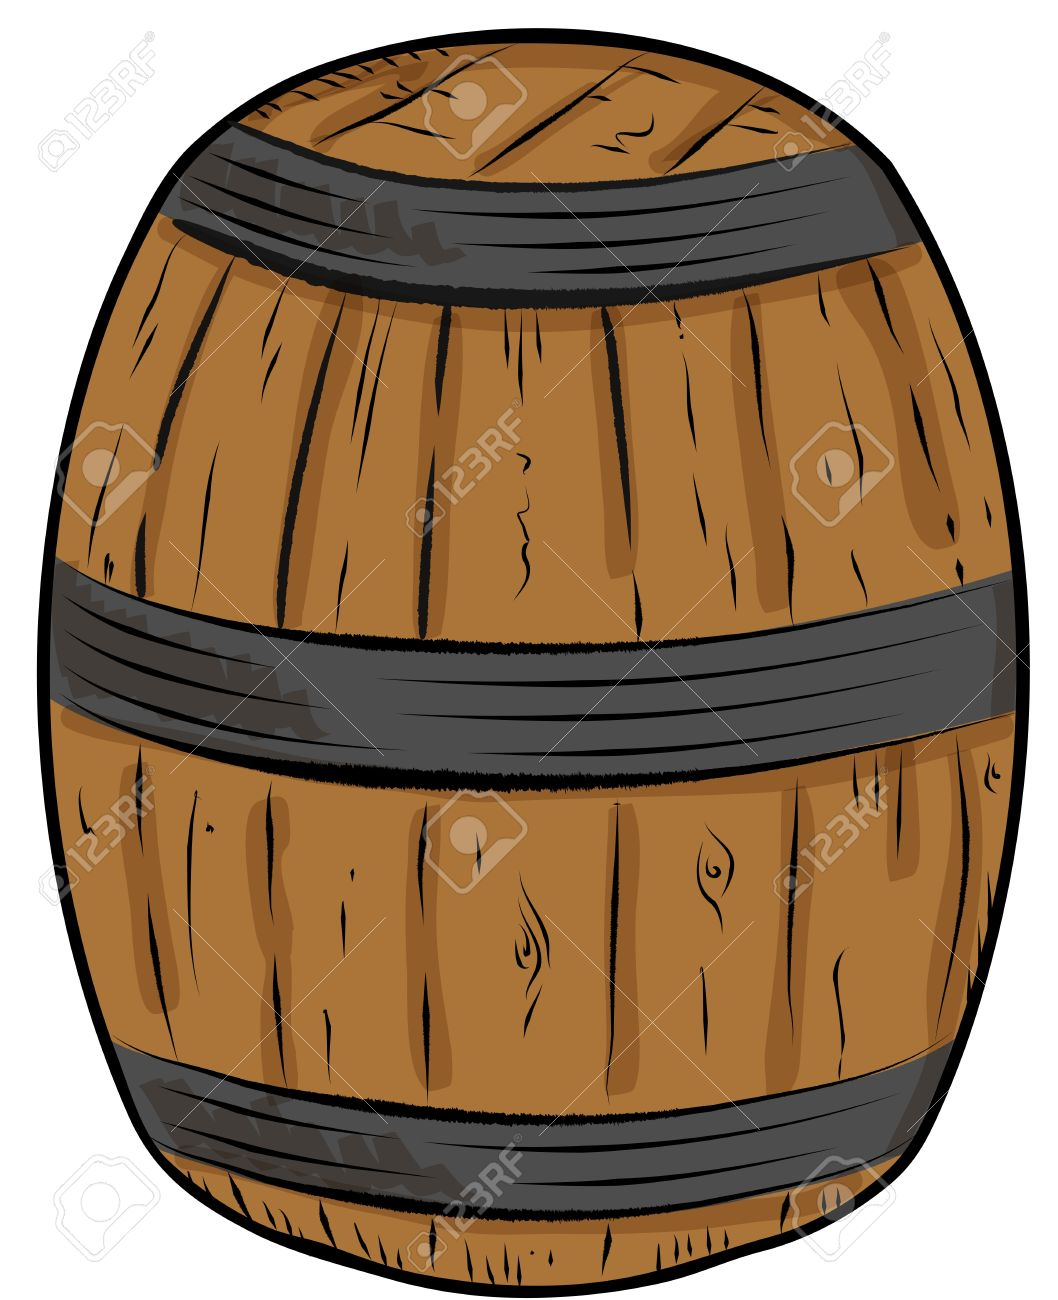 Sketch Whisky Cask Royalty Free Cliparts, Vectors, And Stock.